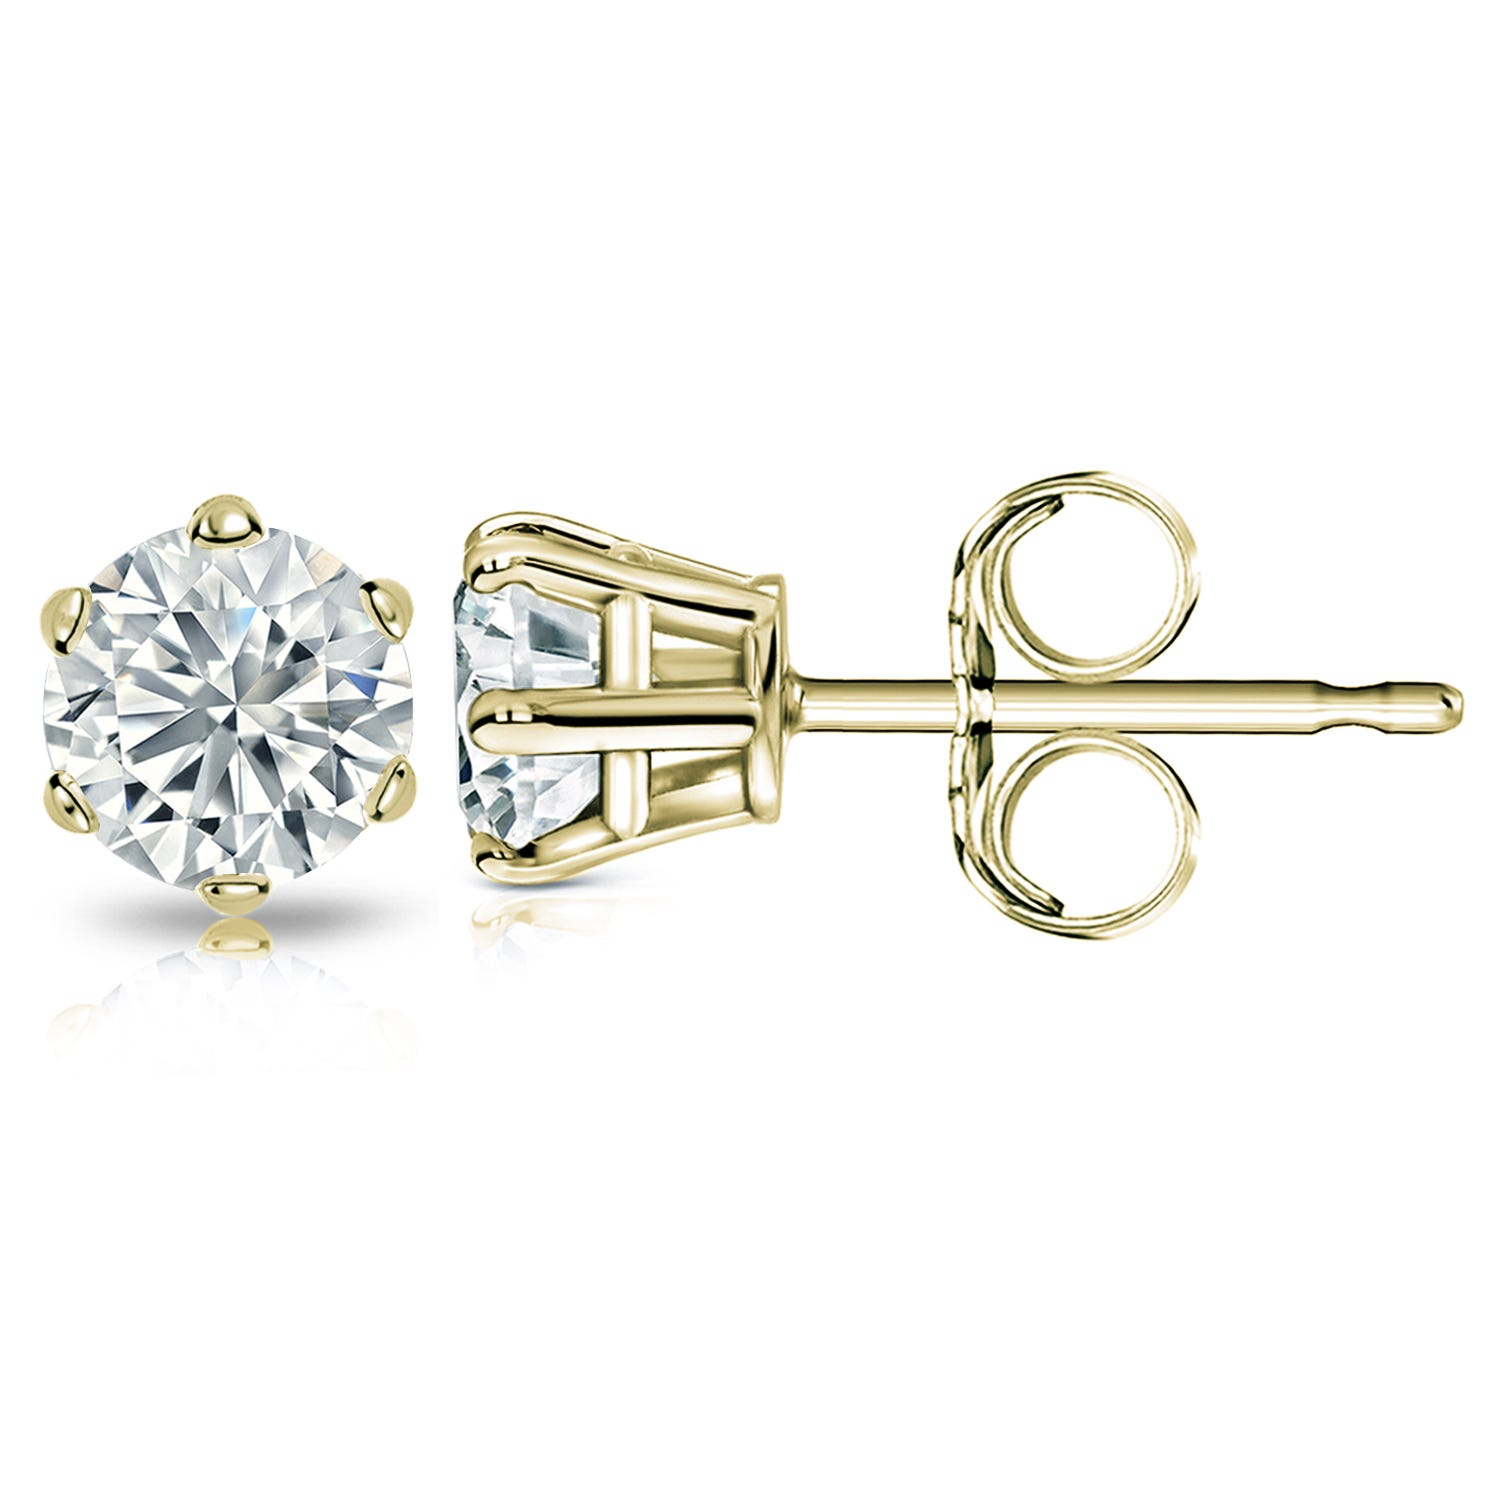 Round Diamond 2ctw. (IJ-I2) Solitaire Stud 6-Prong Earrings in 10K Yellow Gold